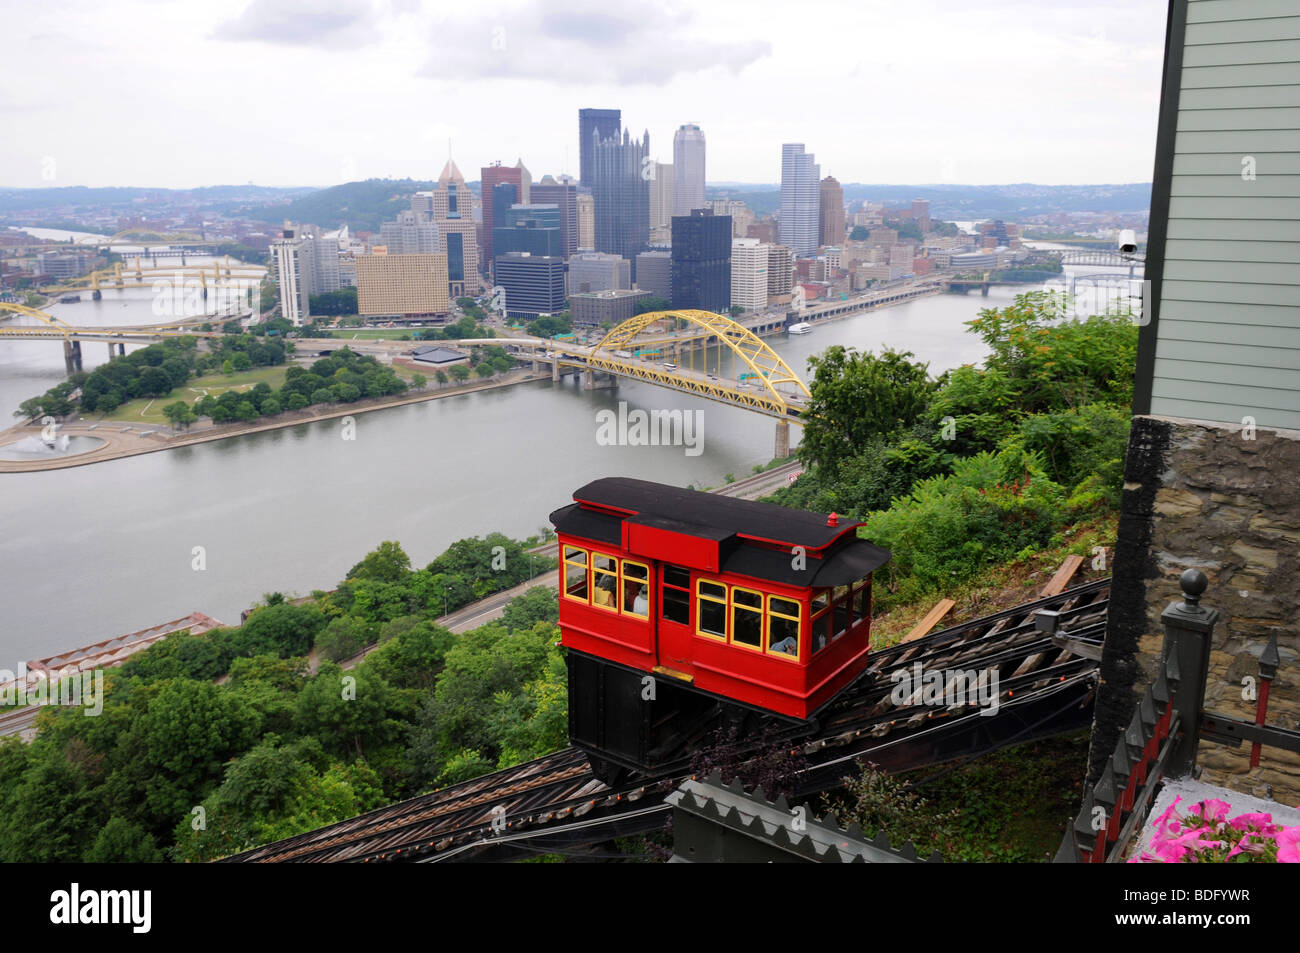 View of the city of Pittsburgh from the Duquesne Incline - Stock Image